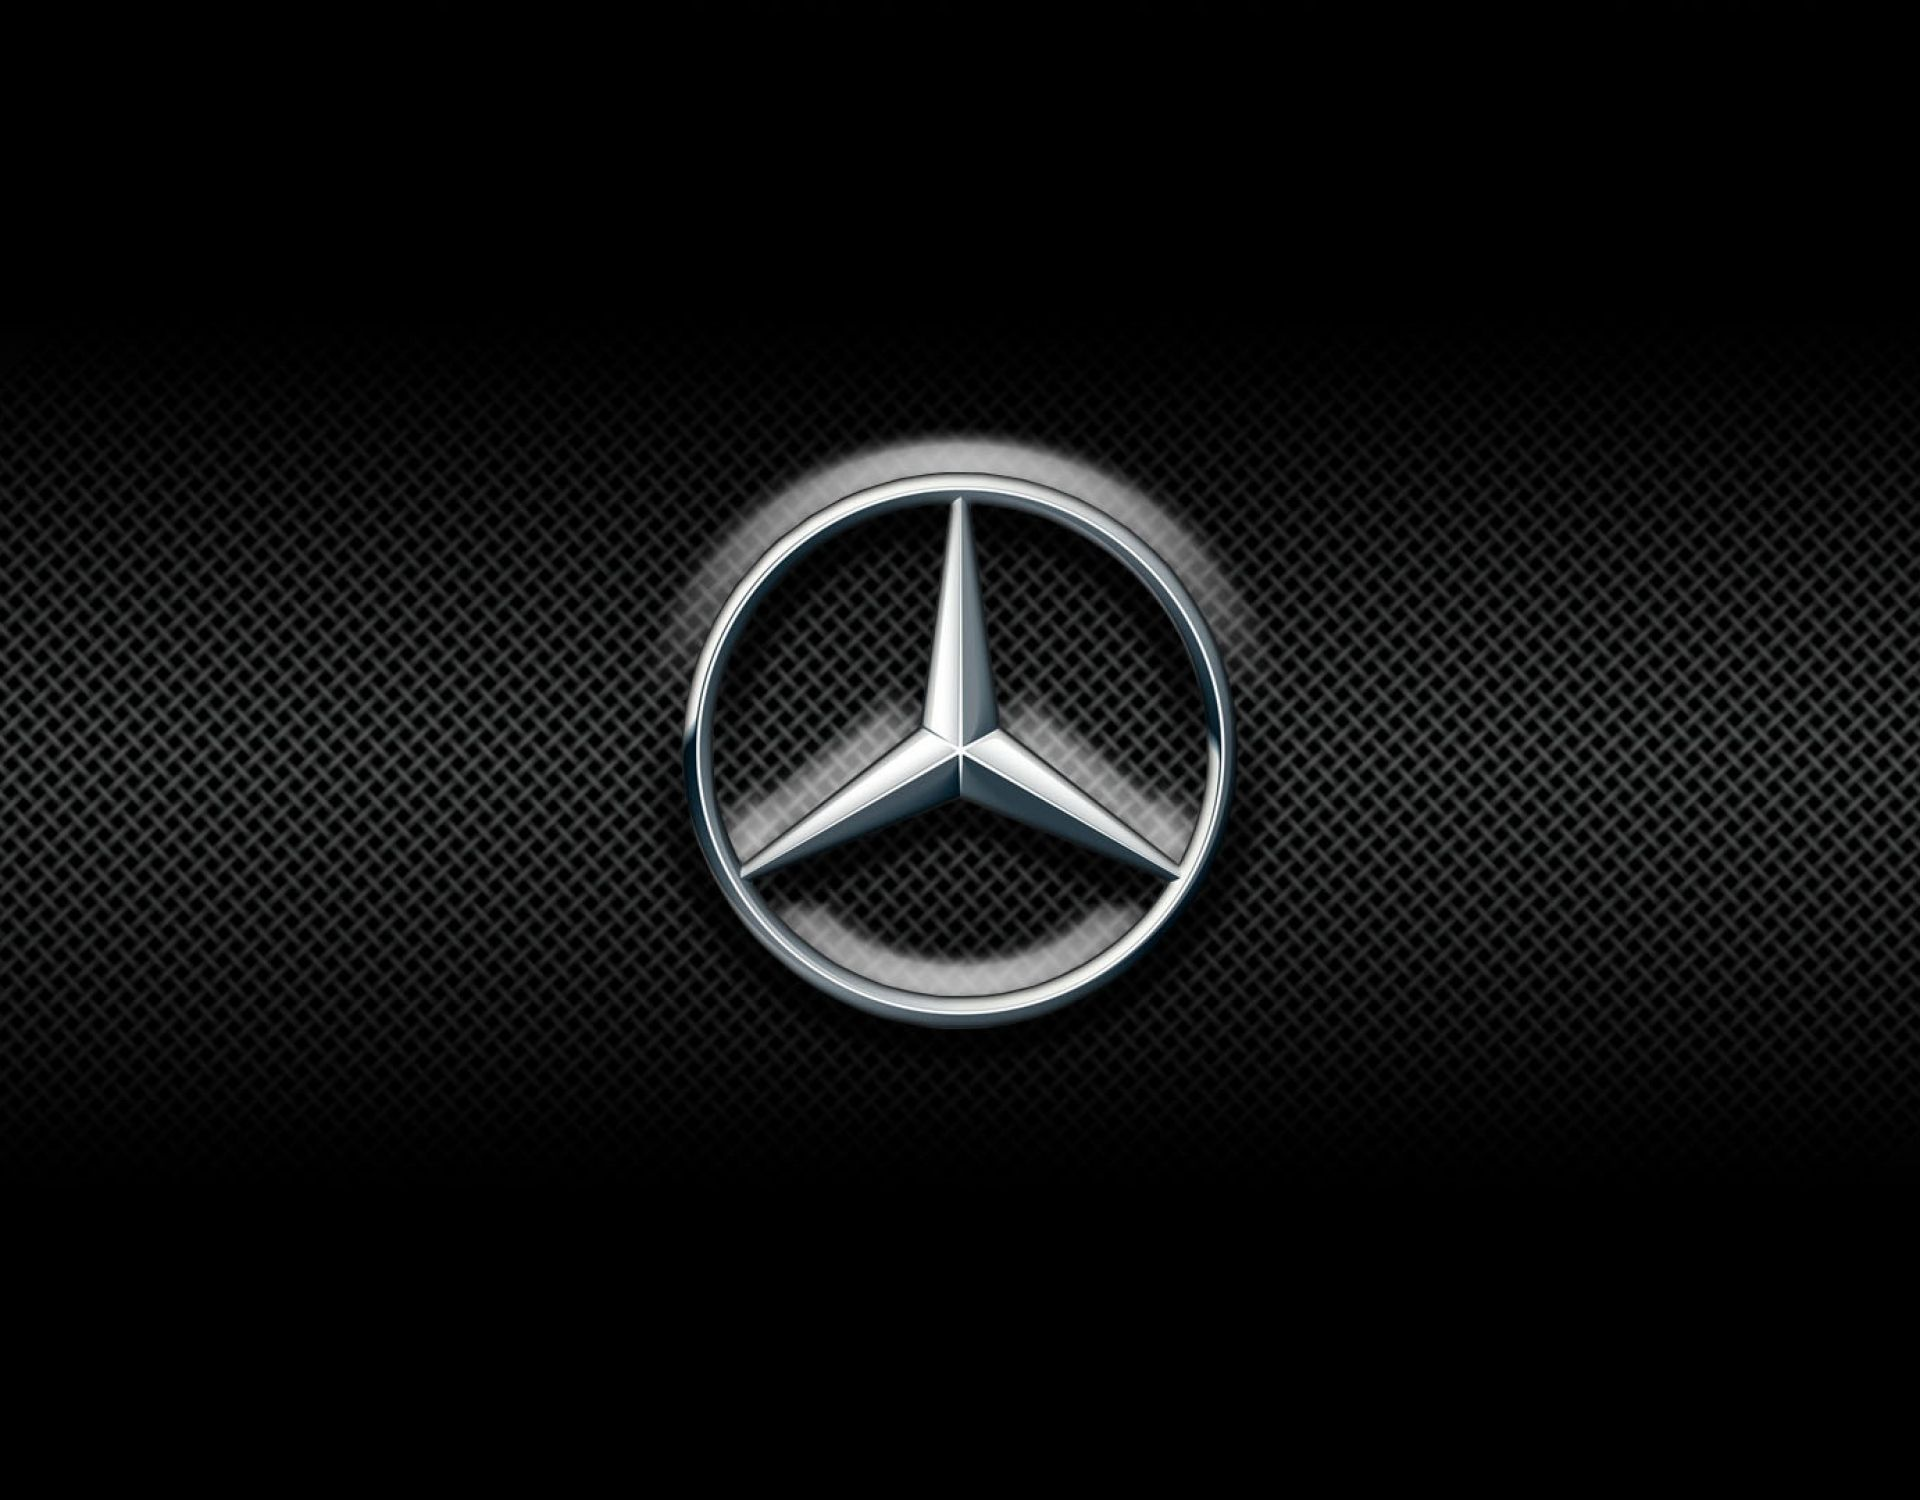 Mercedes logo wallpapers find best latest mercedes logo mercedes logo wallpapers find best latest mercedes logo wallpapers in hd for your pc desktop voltagebd Images